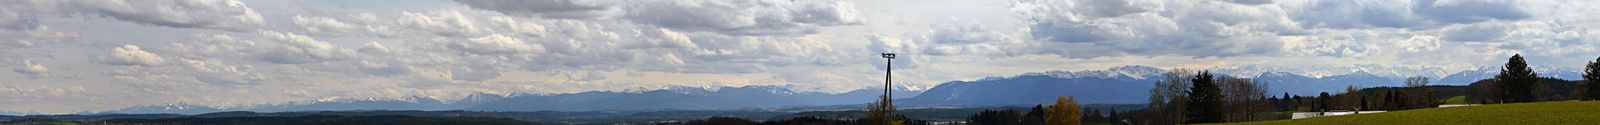 Alps panorama by Gamekiller48